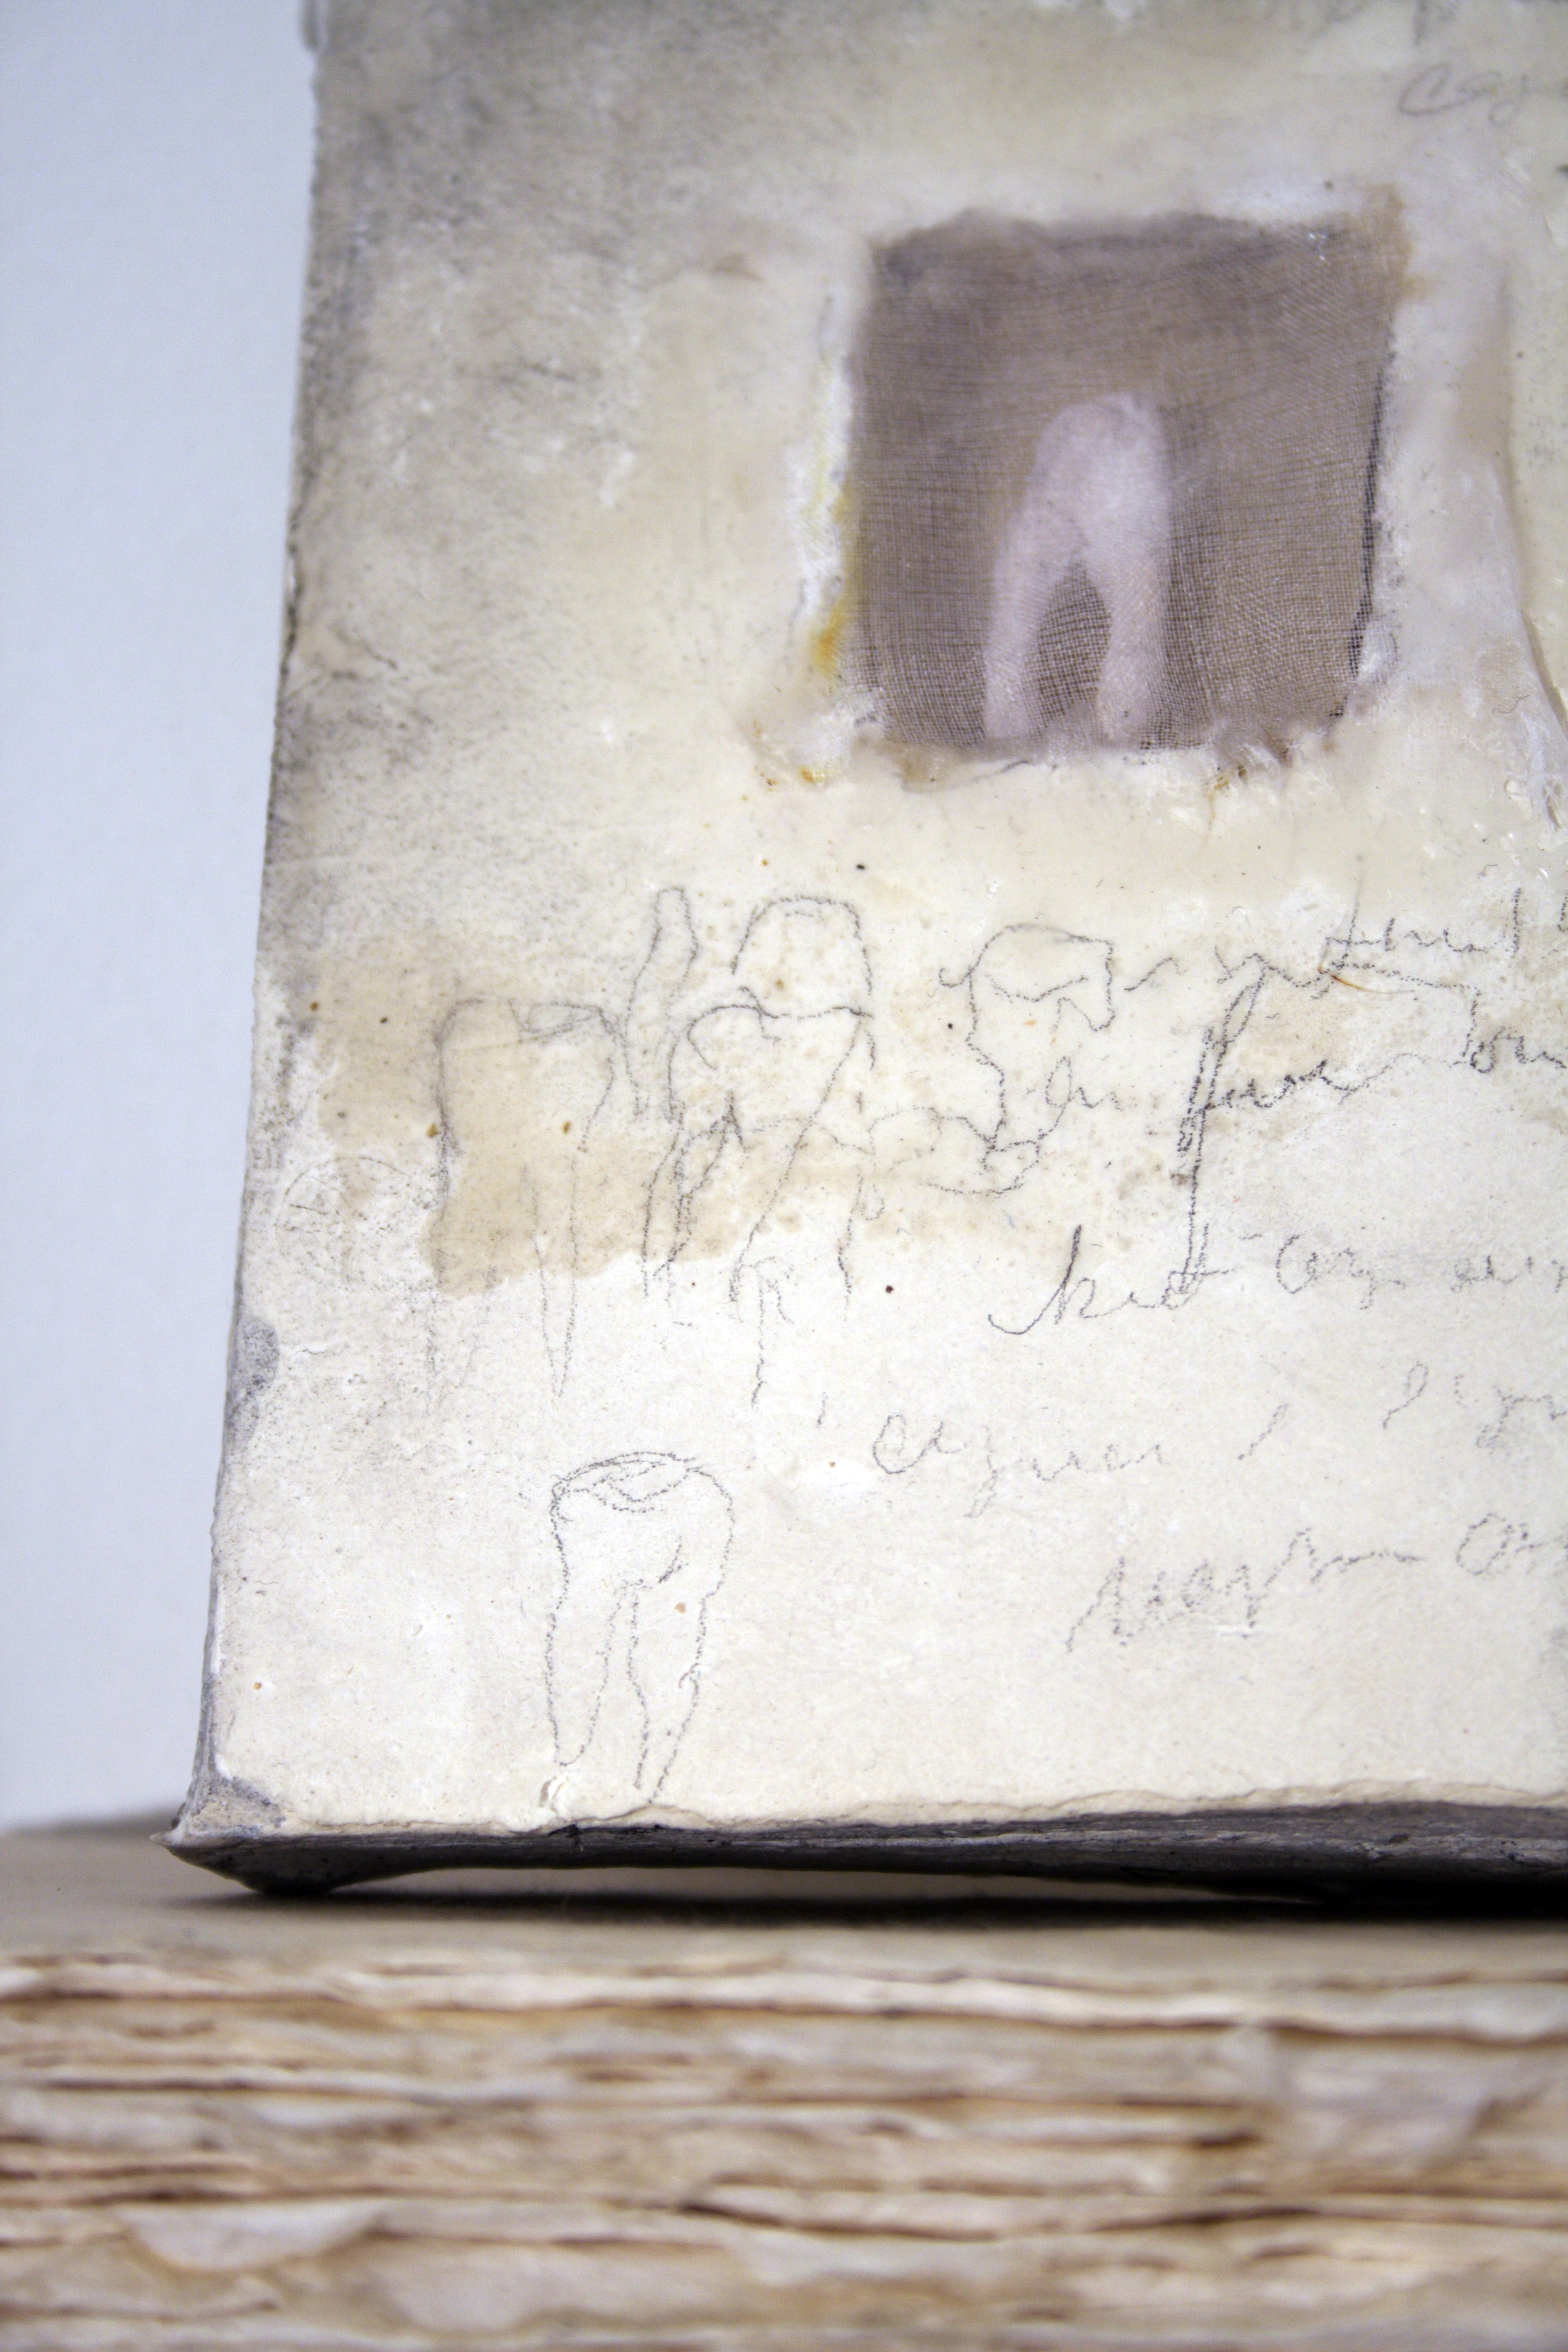 Book about Teeth, detail